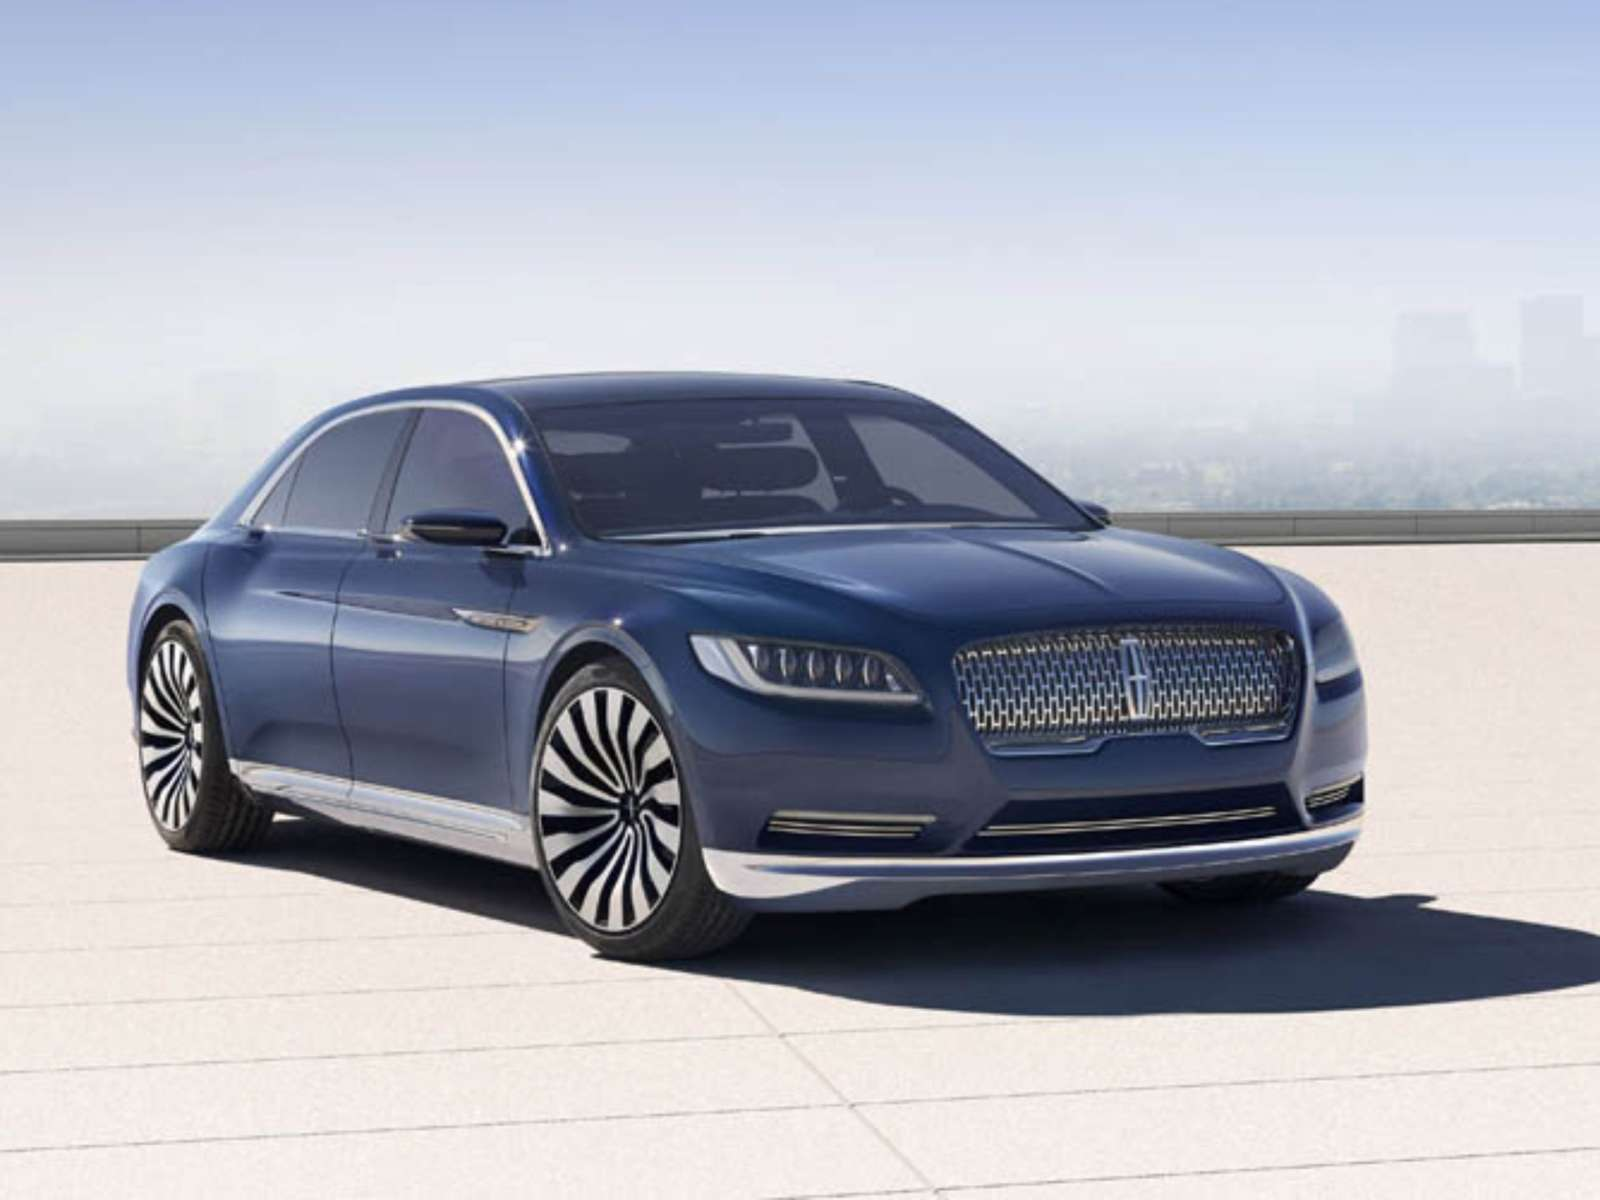 meet the resurrected lincoln continental coming 2016 motoroids. Black Bedroom Furniture Sets. Home Design Ideas